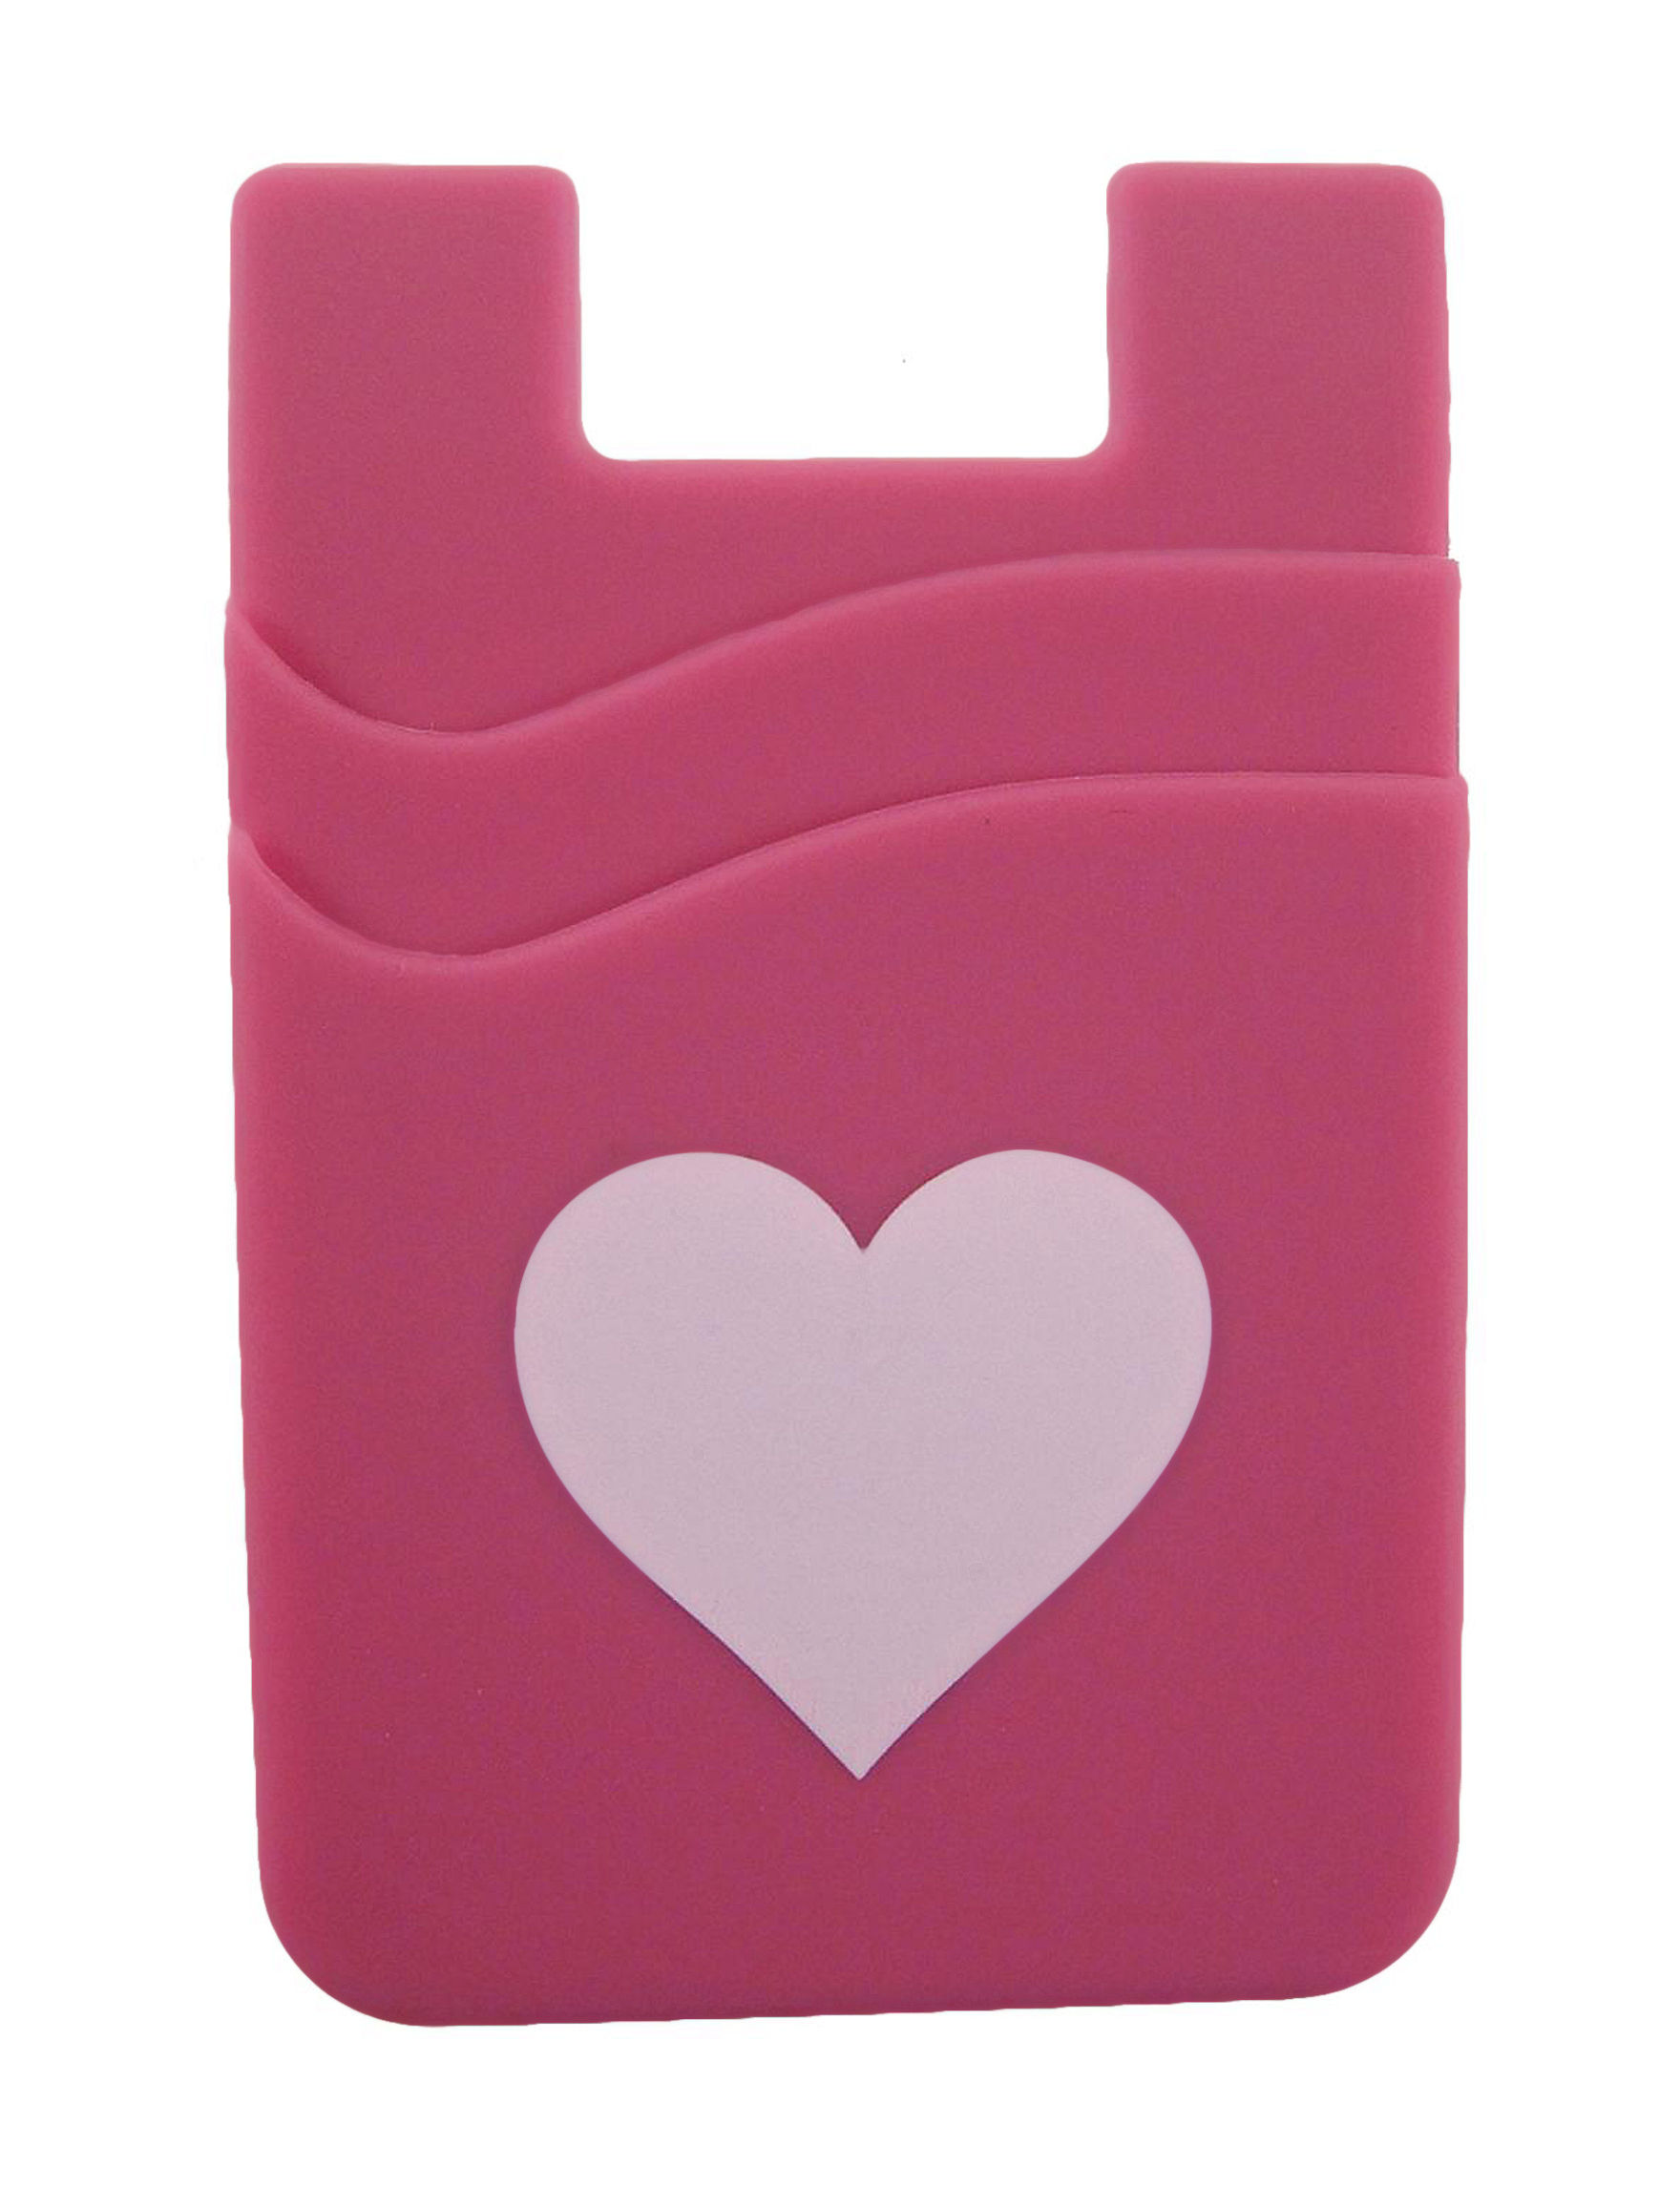 Chateau Pink Tech Accessories